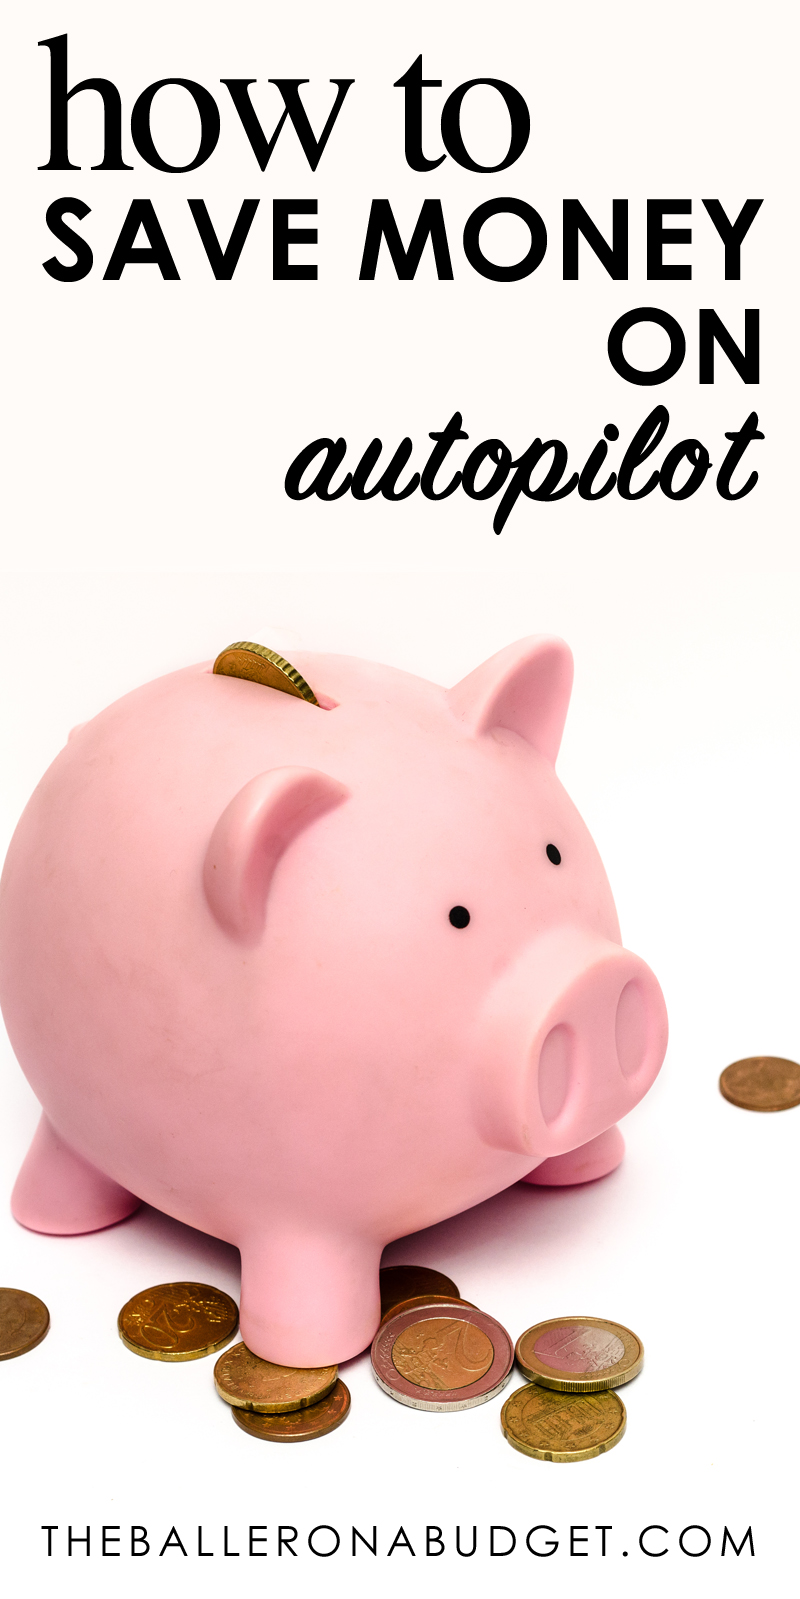 Terrible at saving money? Sometimes, creating spreadsheets or calculating your finances may be a hassle for budgeting. Here's a great way to save money on autopilot with Rize. - www.theballeronabudget.com